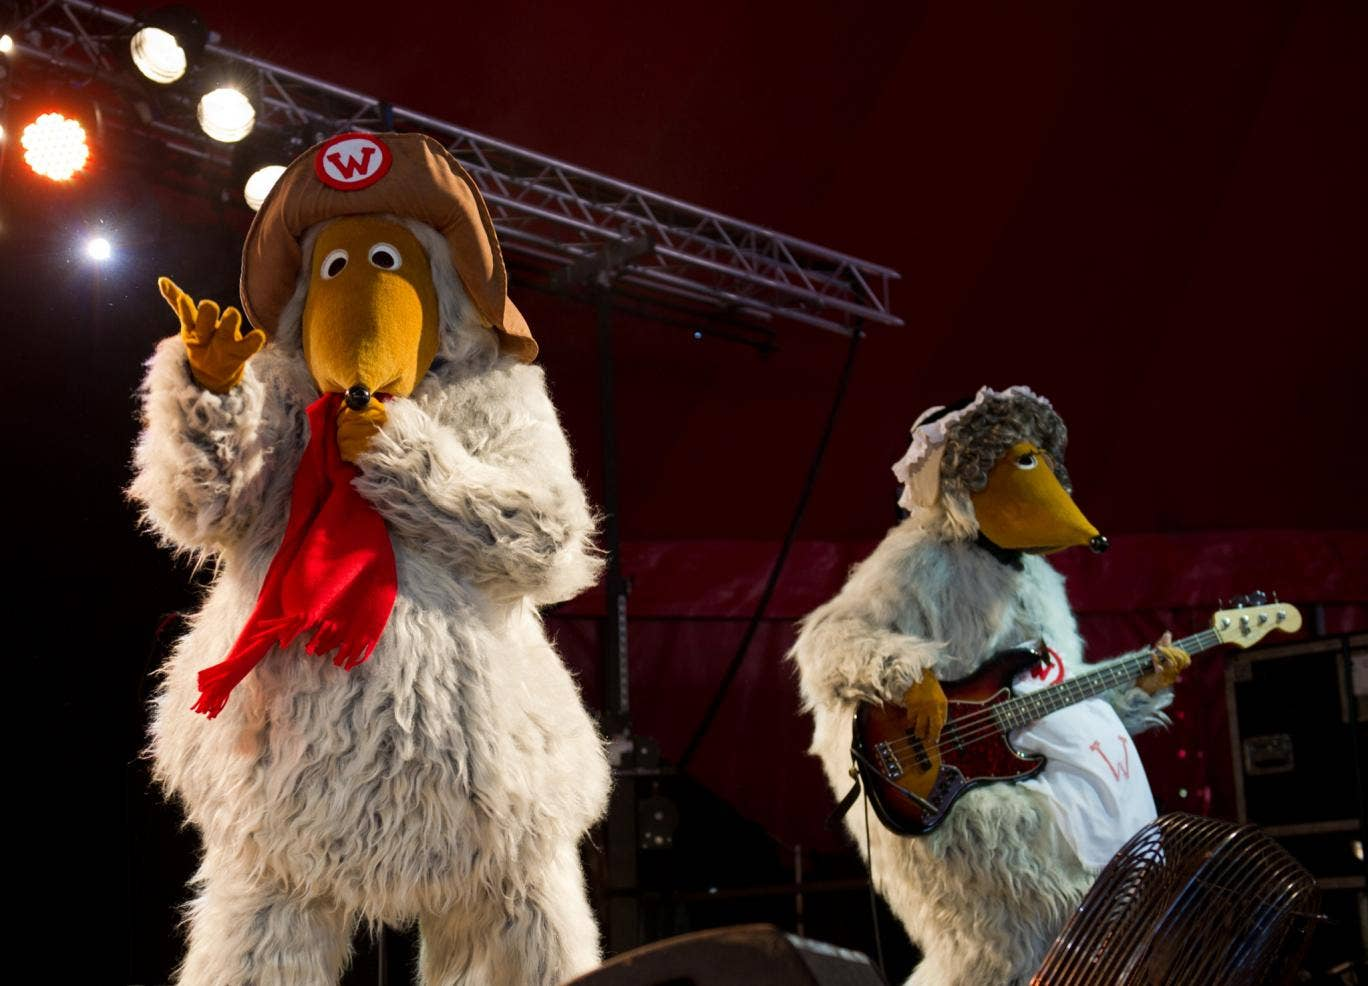 The Wombles of Wimbledon are making their big screen debut